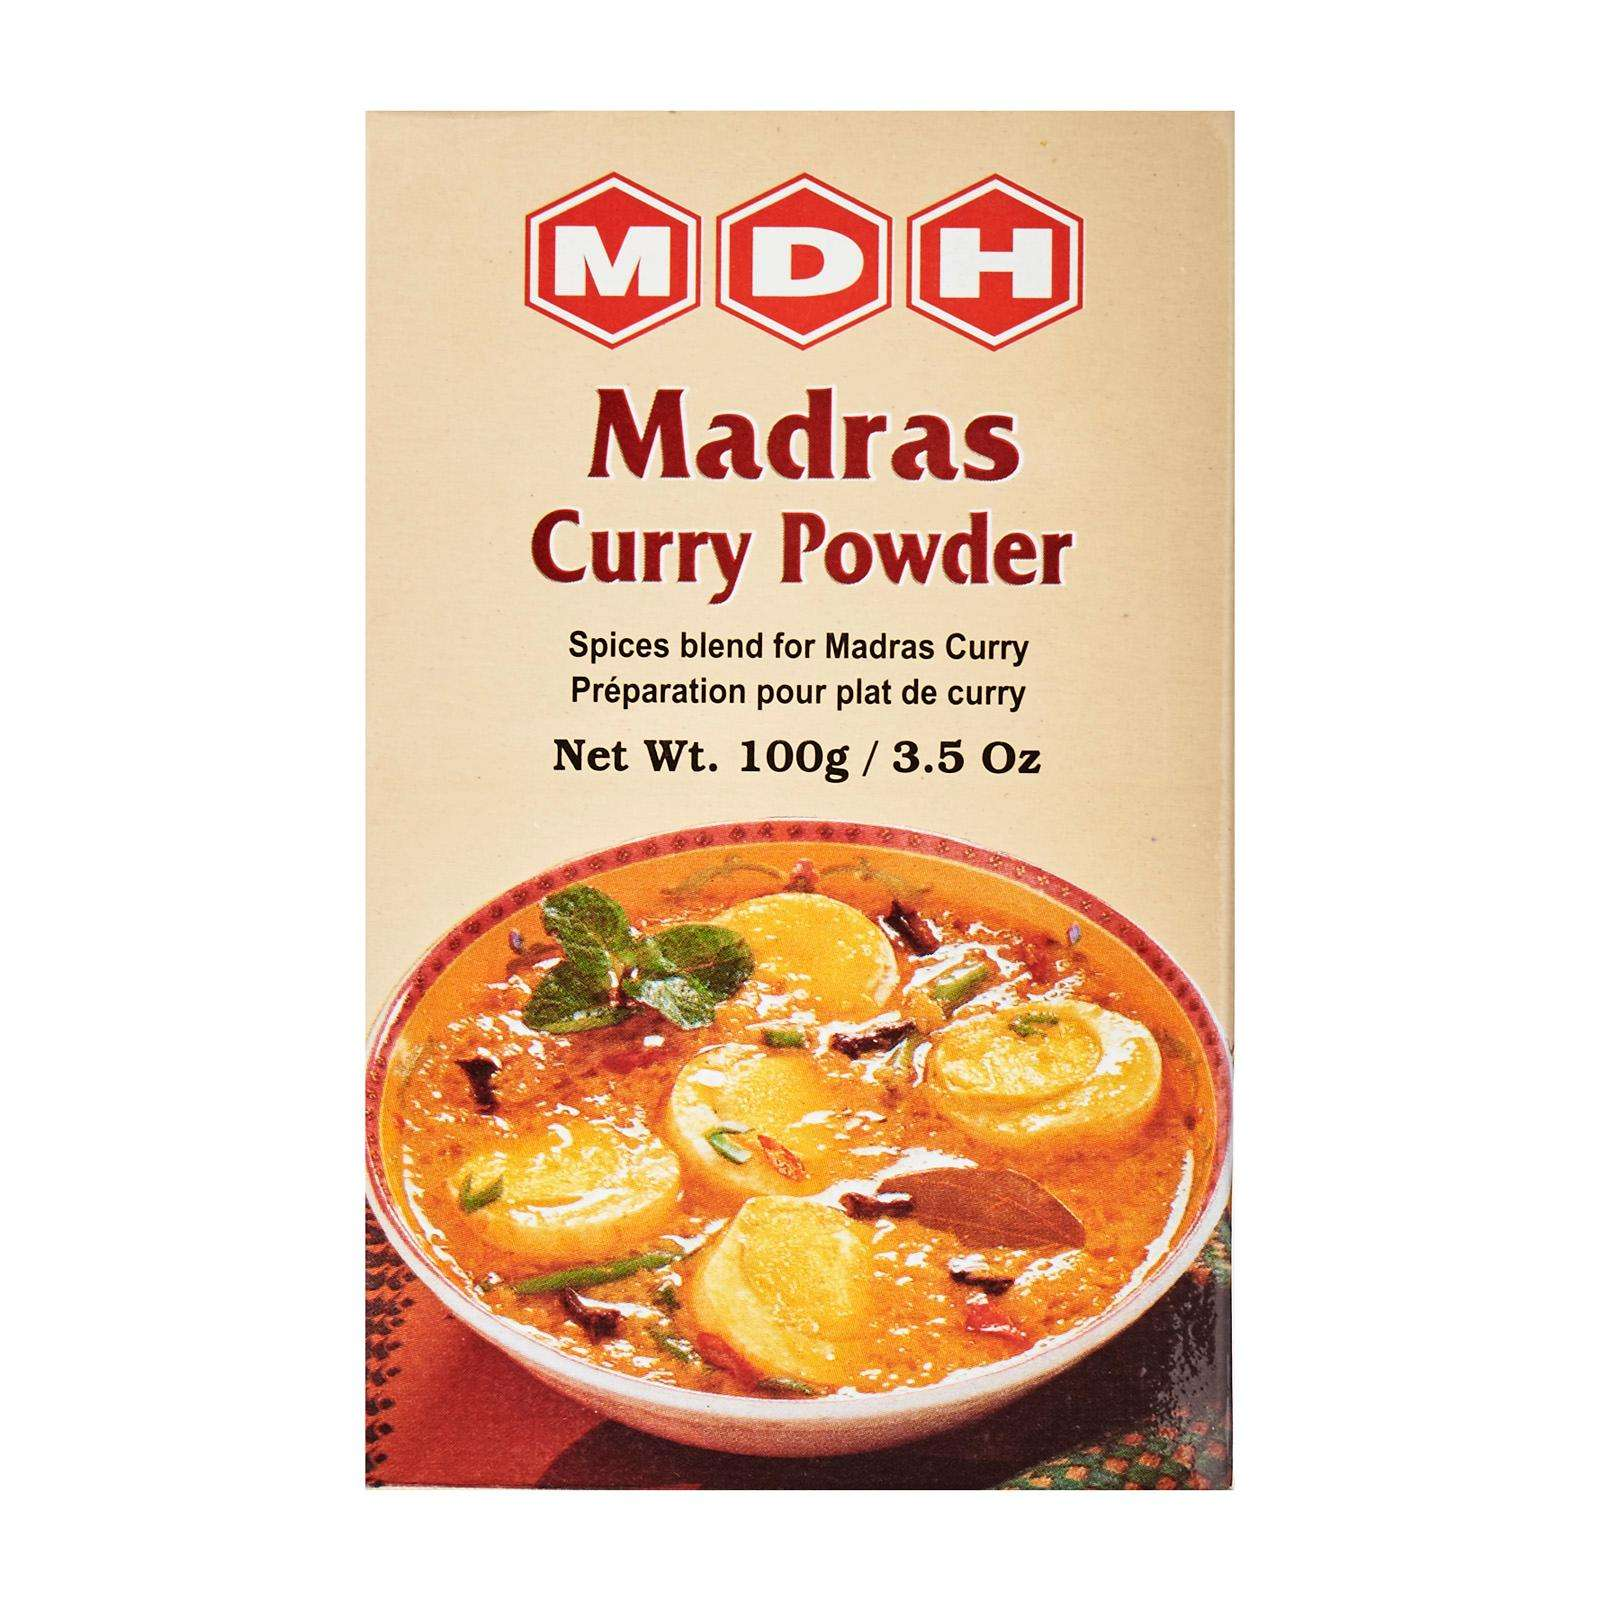 High Quality 36 Months Shelf Life MDH Madras Curry Powder 100g Spices From India